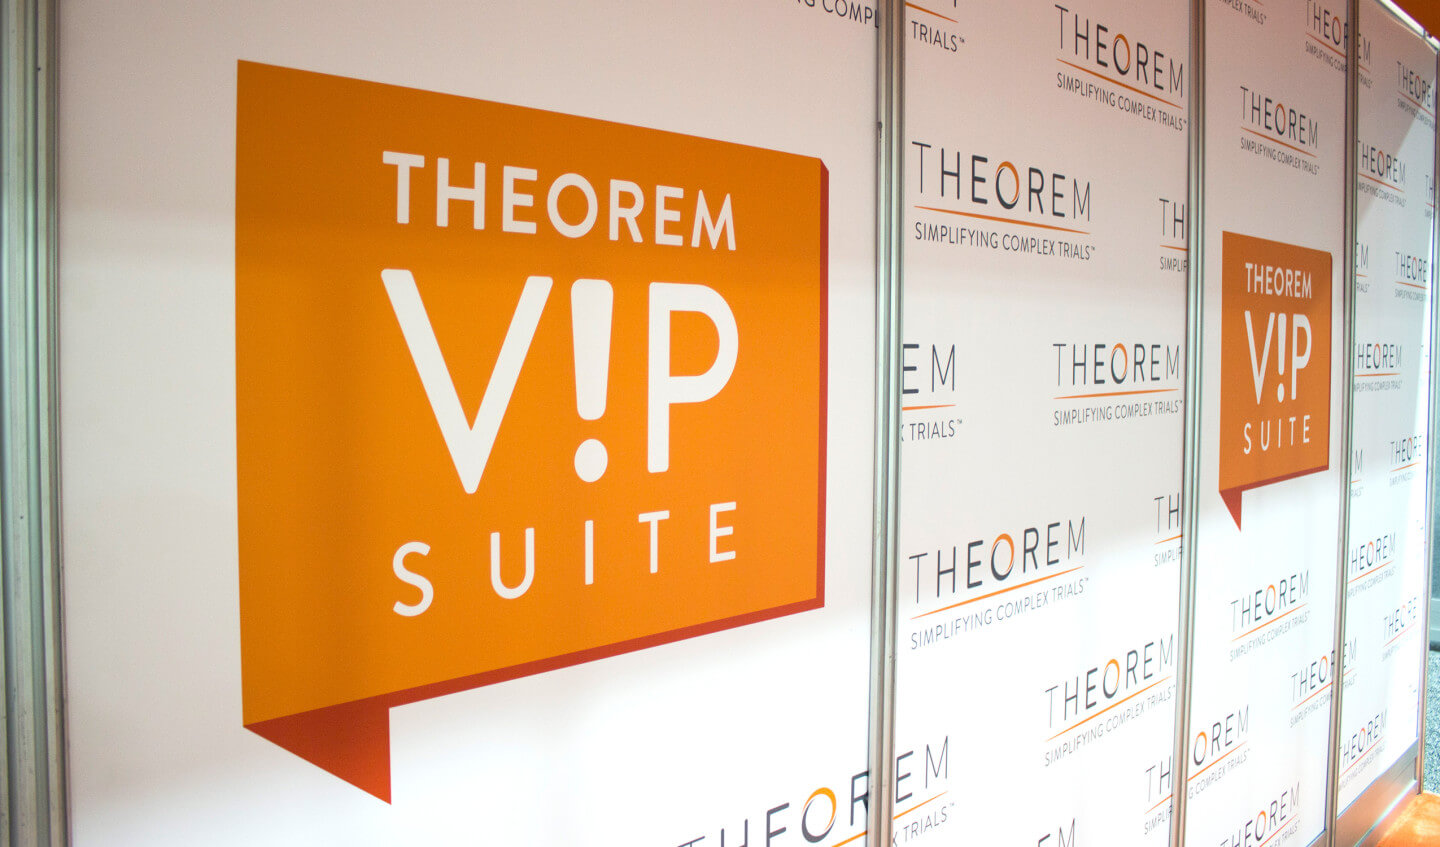 Theorem DIA vip business suite